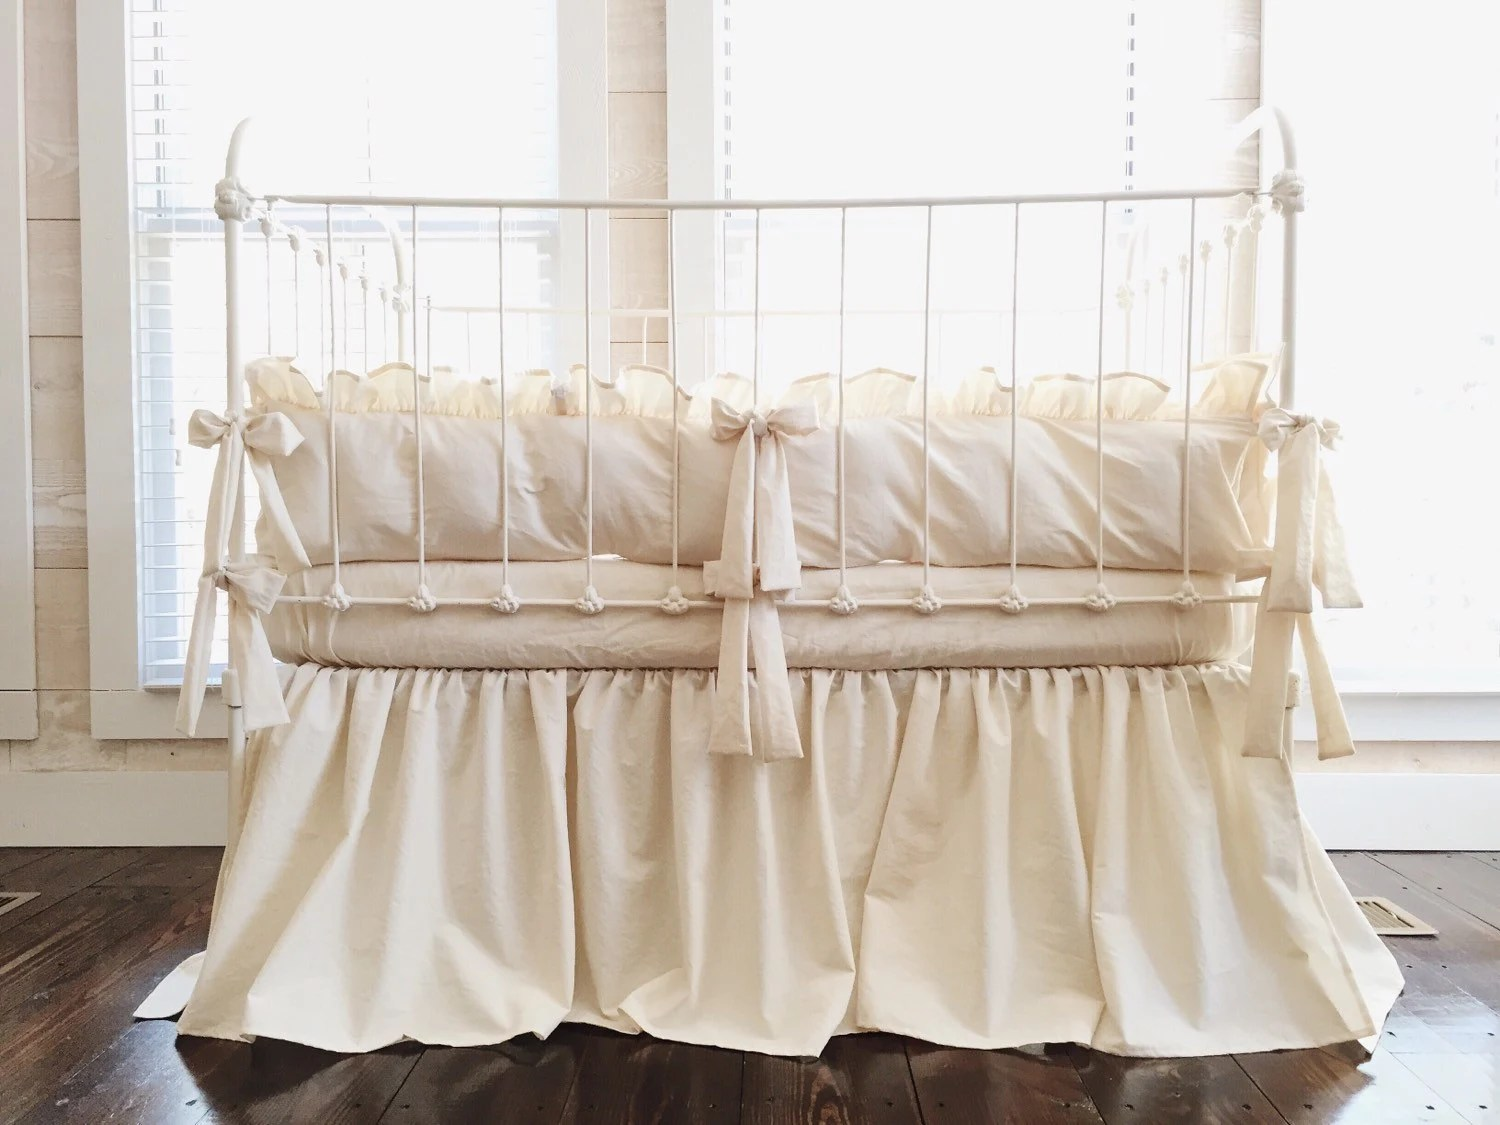 Full Crib Bedding Sets Natural Farmhouse Crib Bedding Set Neutral Baby Bedding Neutral Nursery Bedding By High Cotton Textile